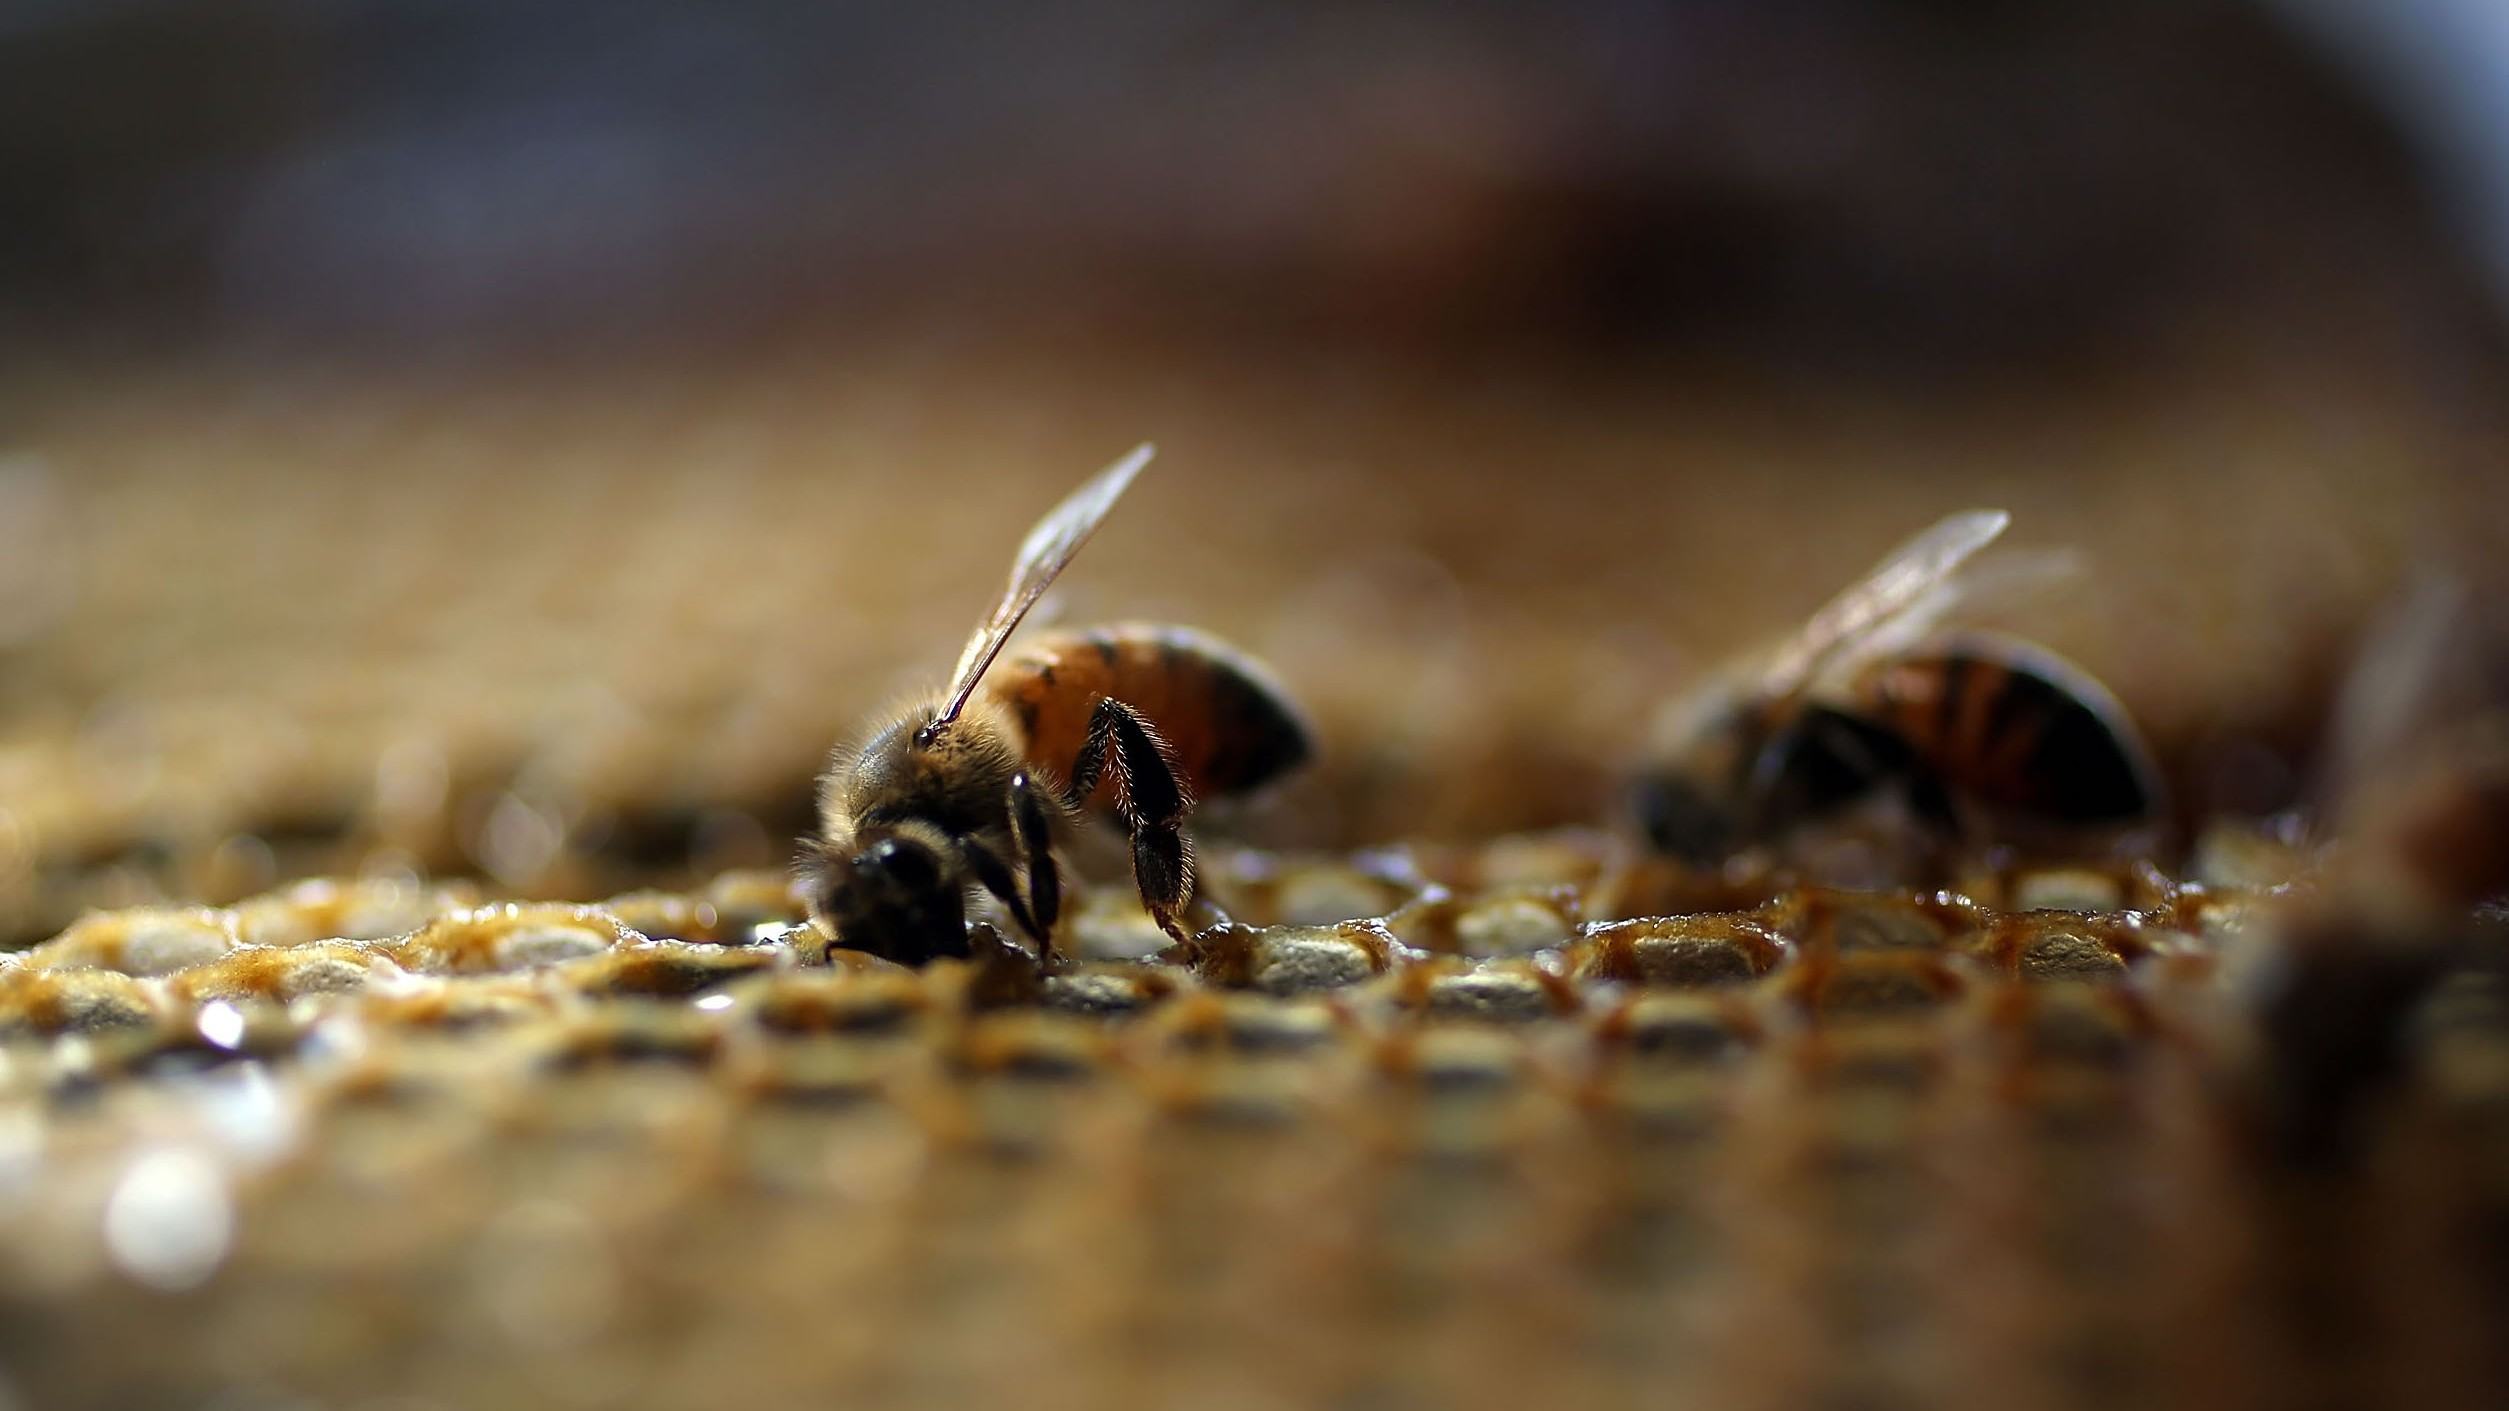 The First-Ever Insect Vaccine Is Designed to Protect Bees from Devastating Diseases